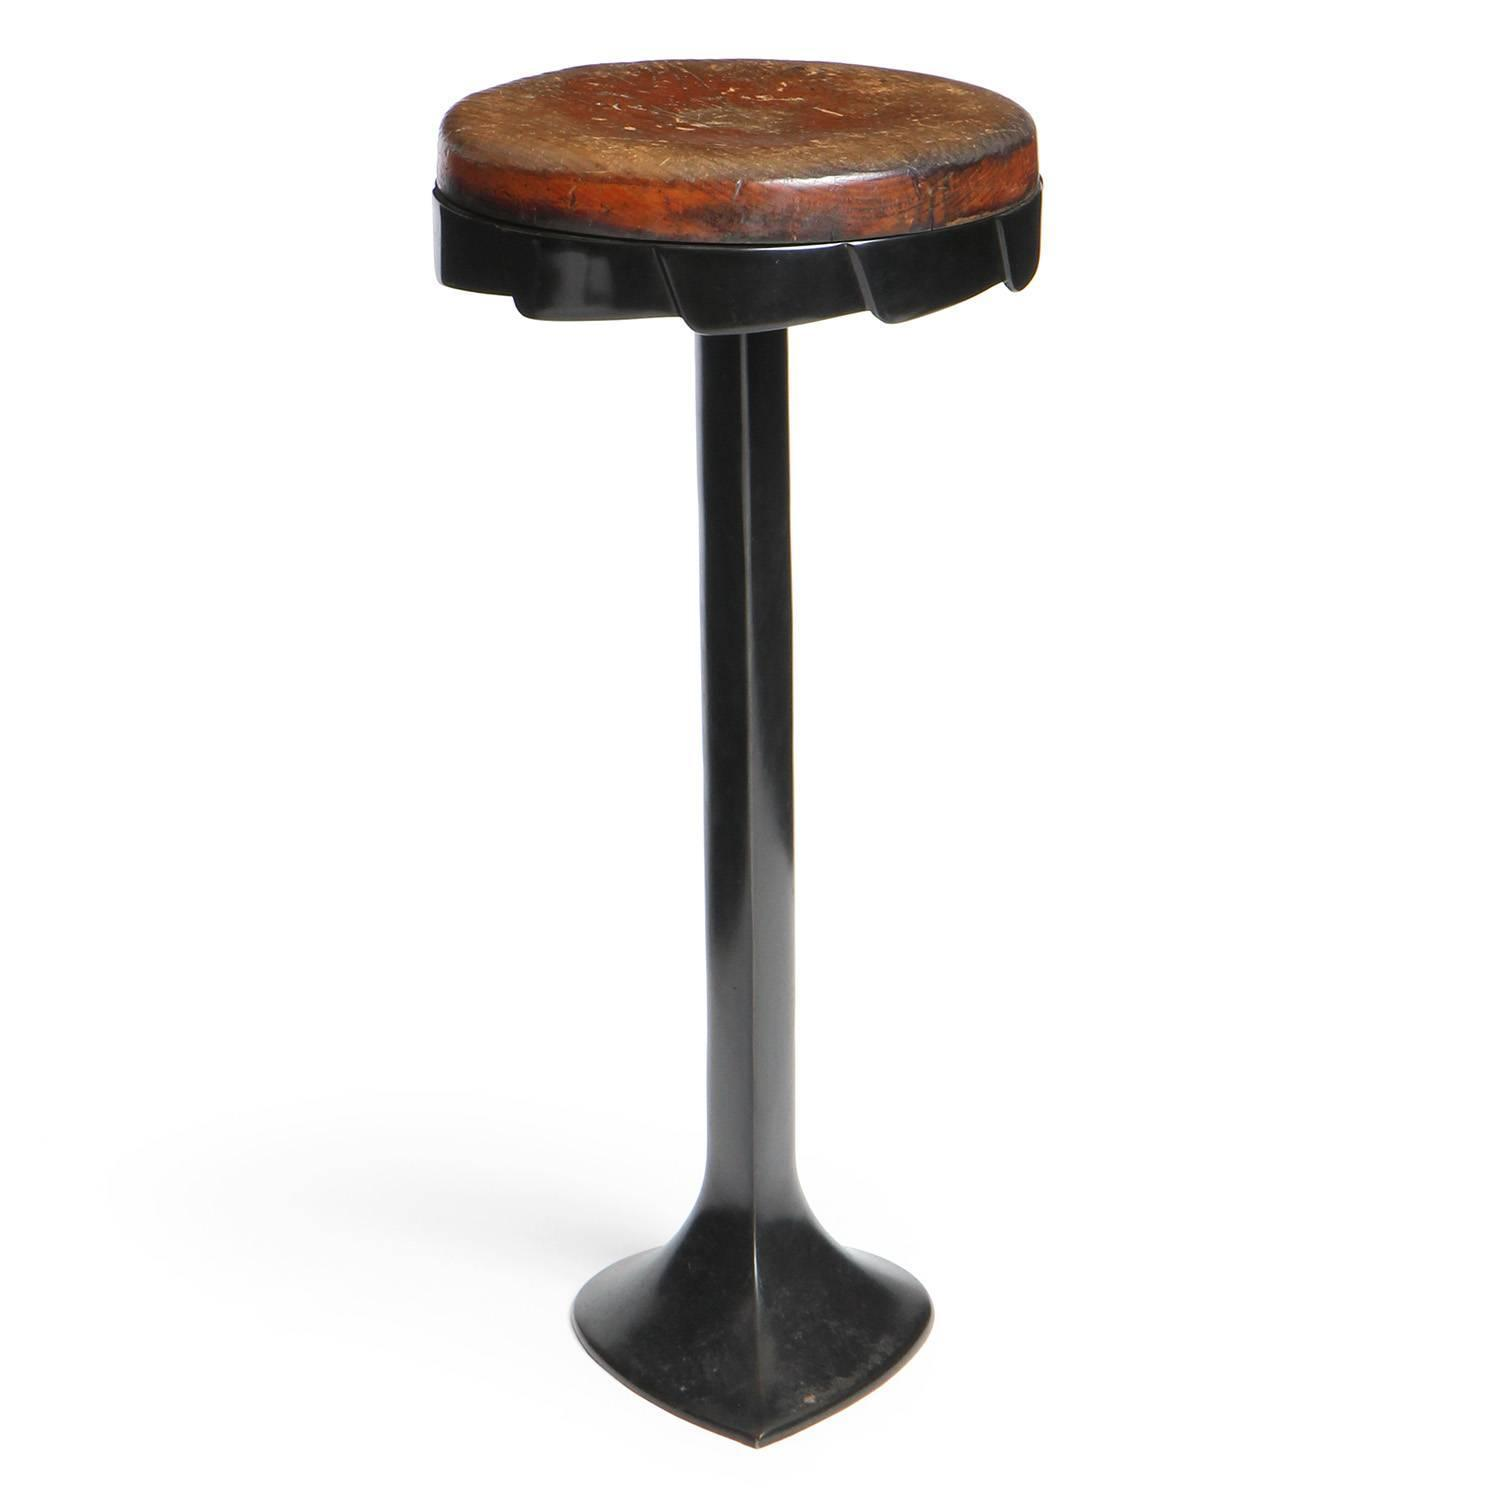 Patinated Cast Iron Barstool For Sale At 1stdibs